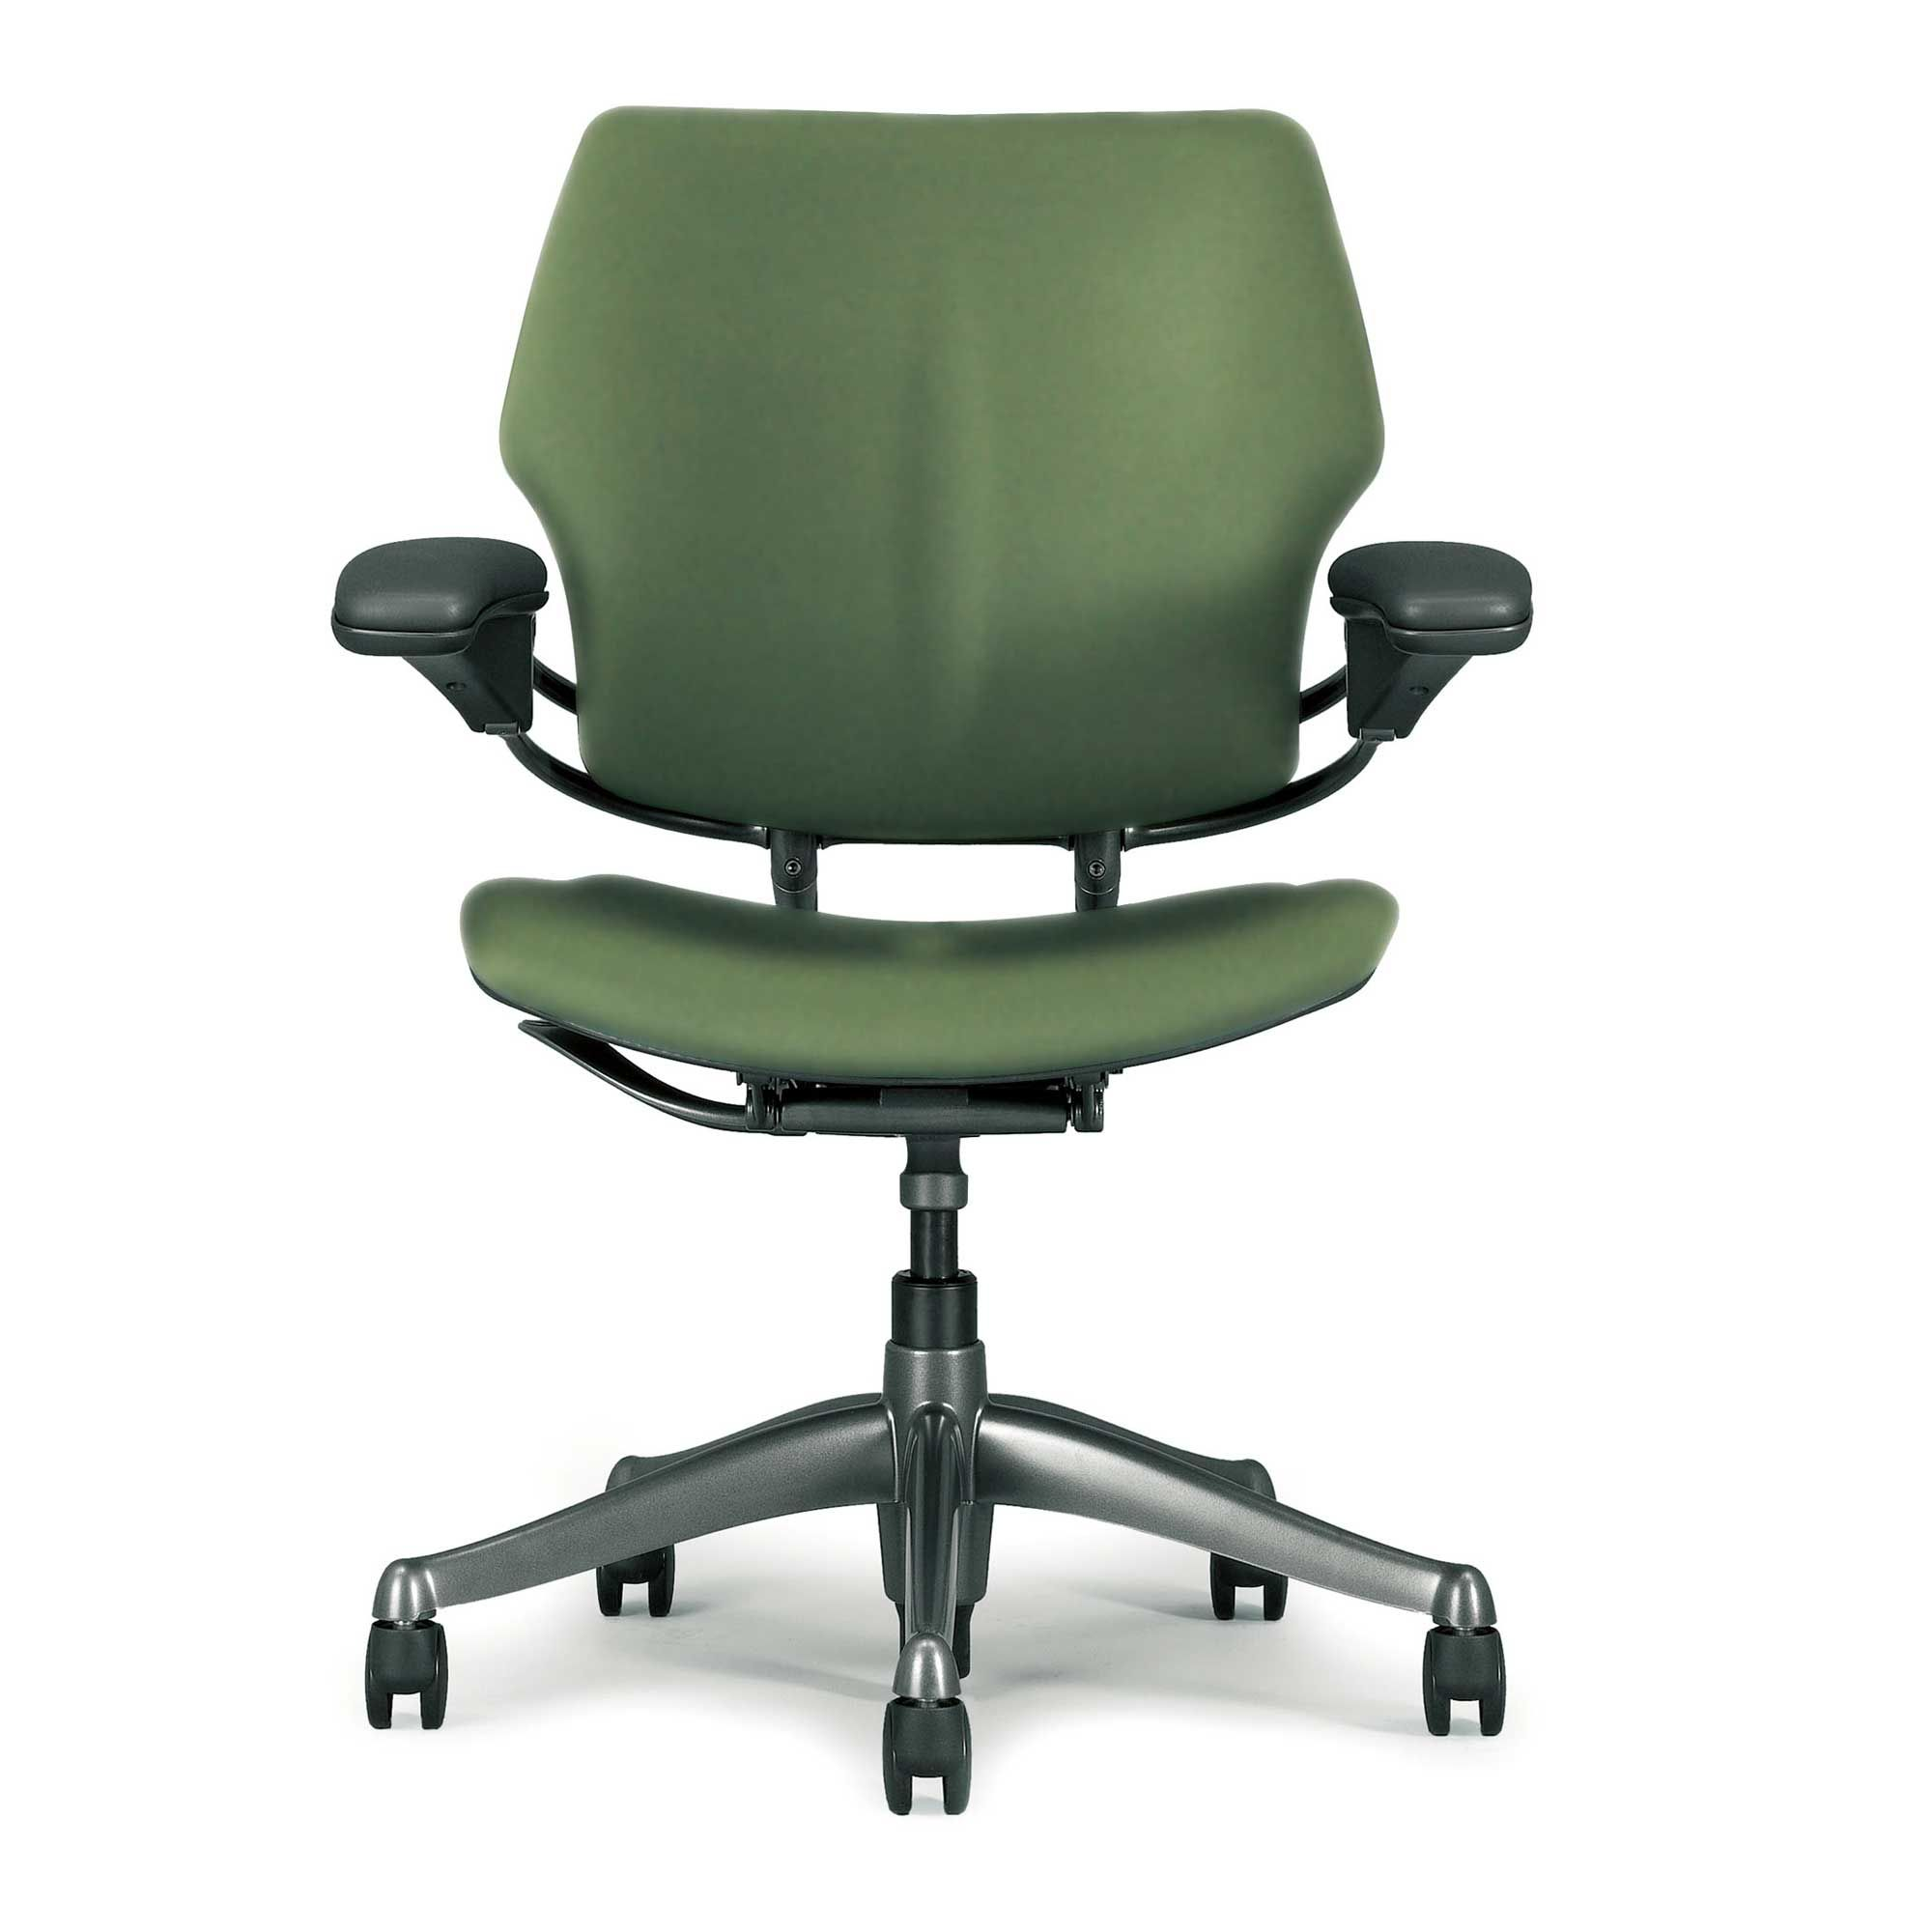 Ergonomic green freedom computer task chair with images